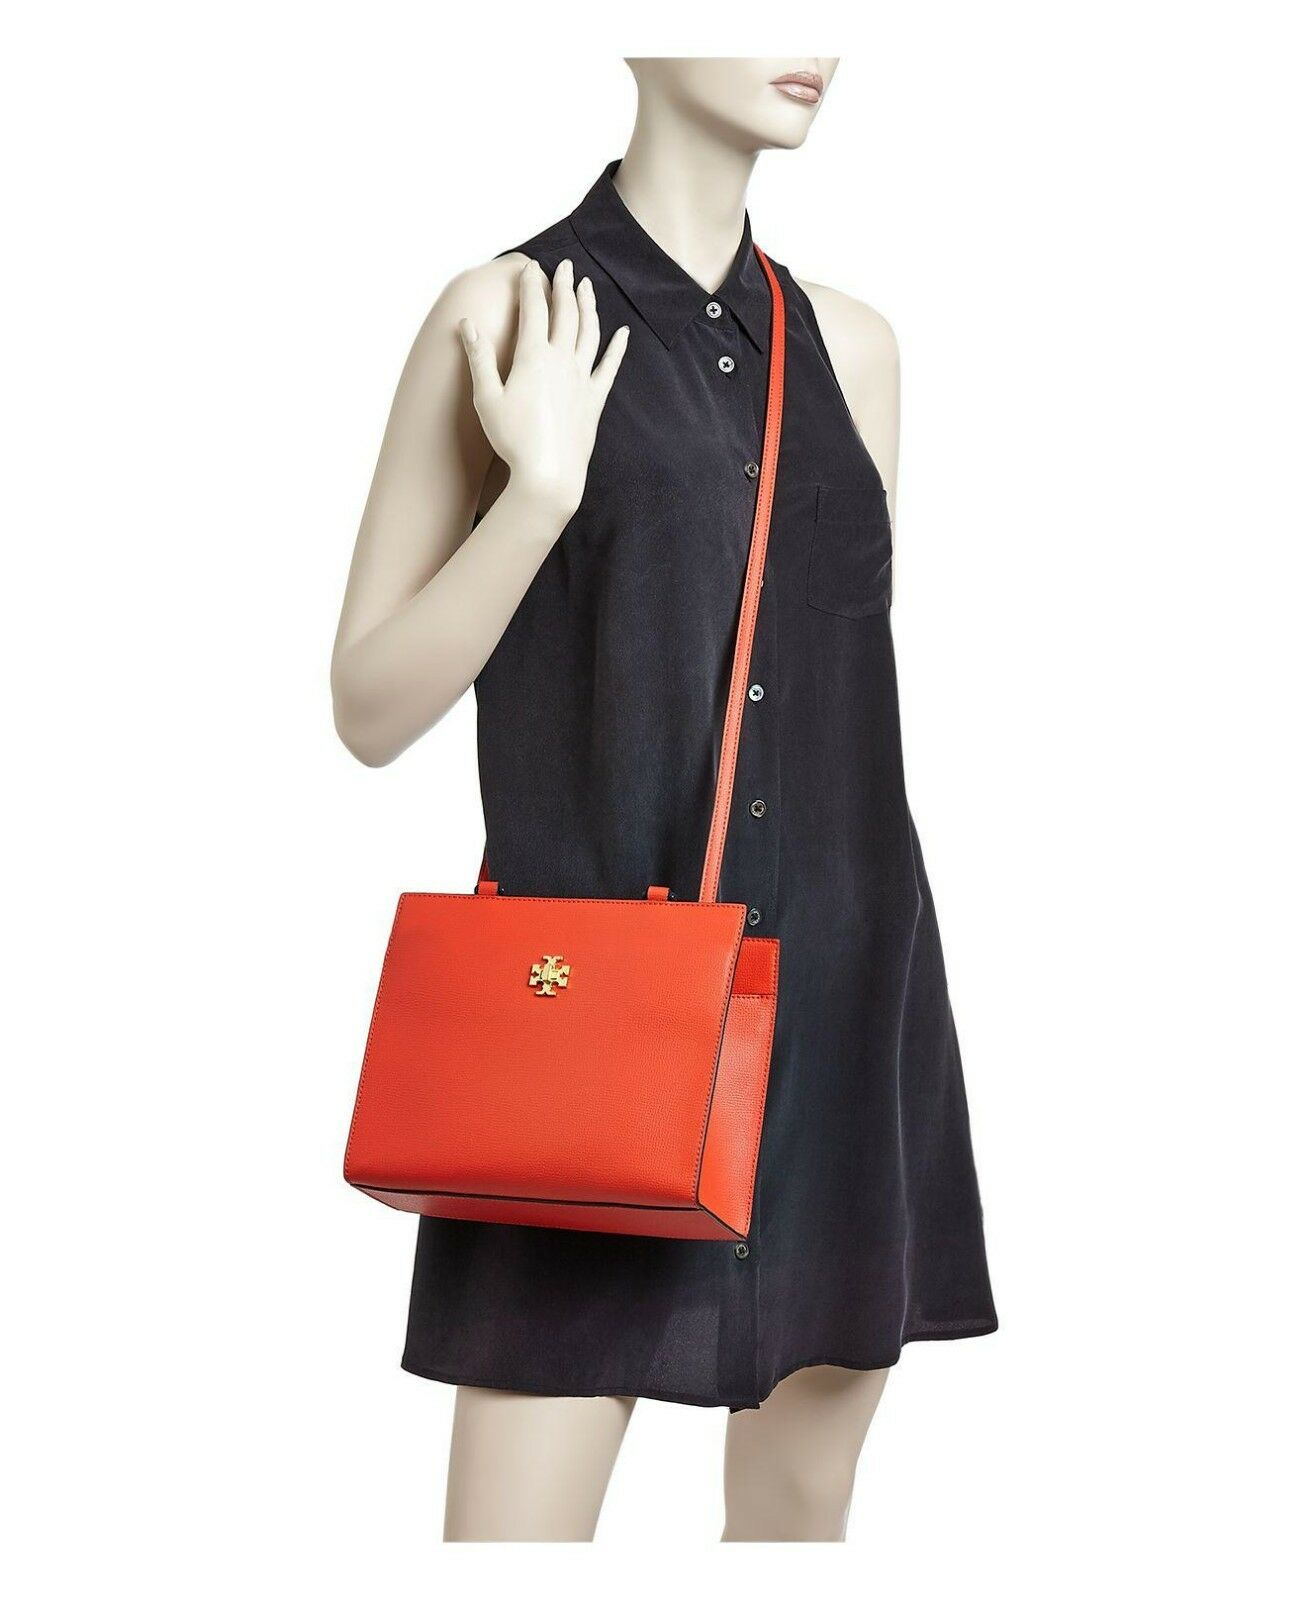 fc26aebd5bc2 Tory Burch Kira Red Leather Small Tote Crossbody Shoulder Bag 45157 for  sale online